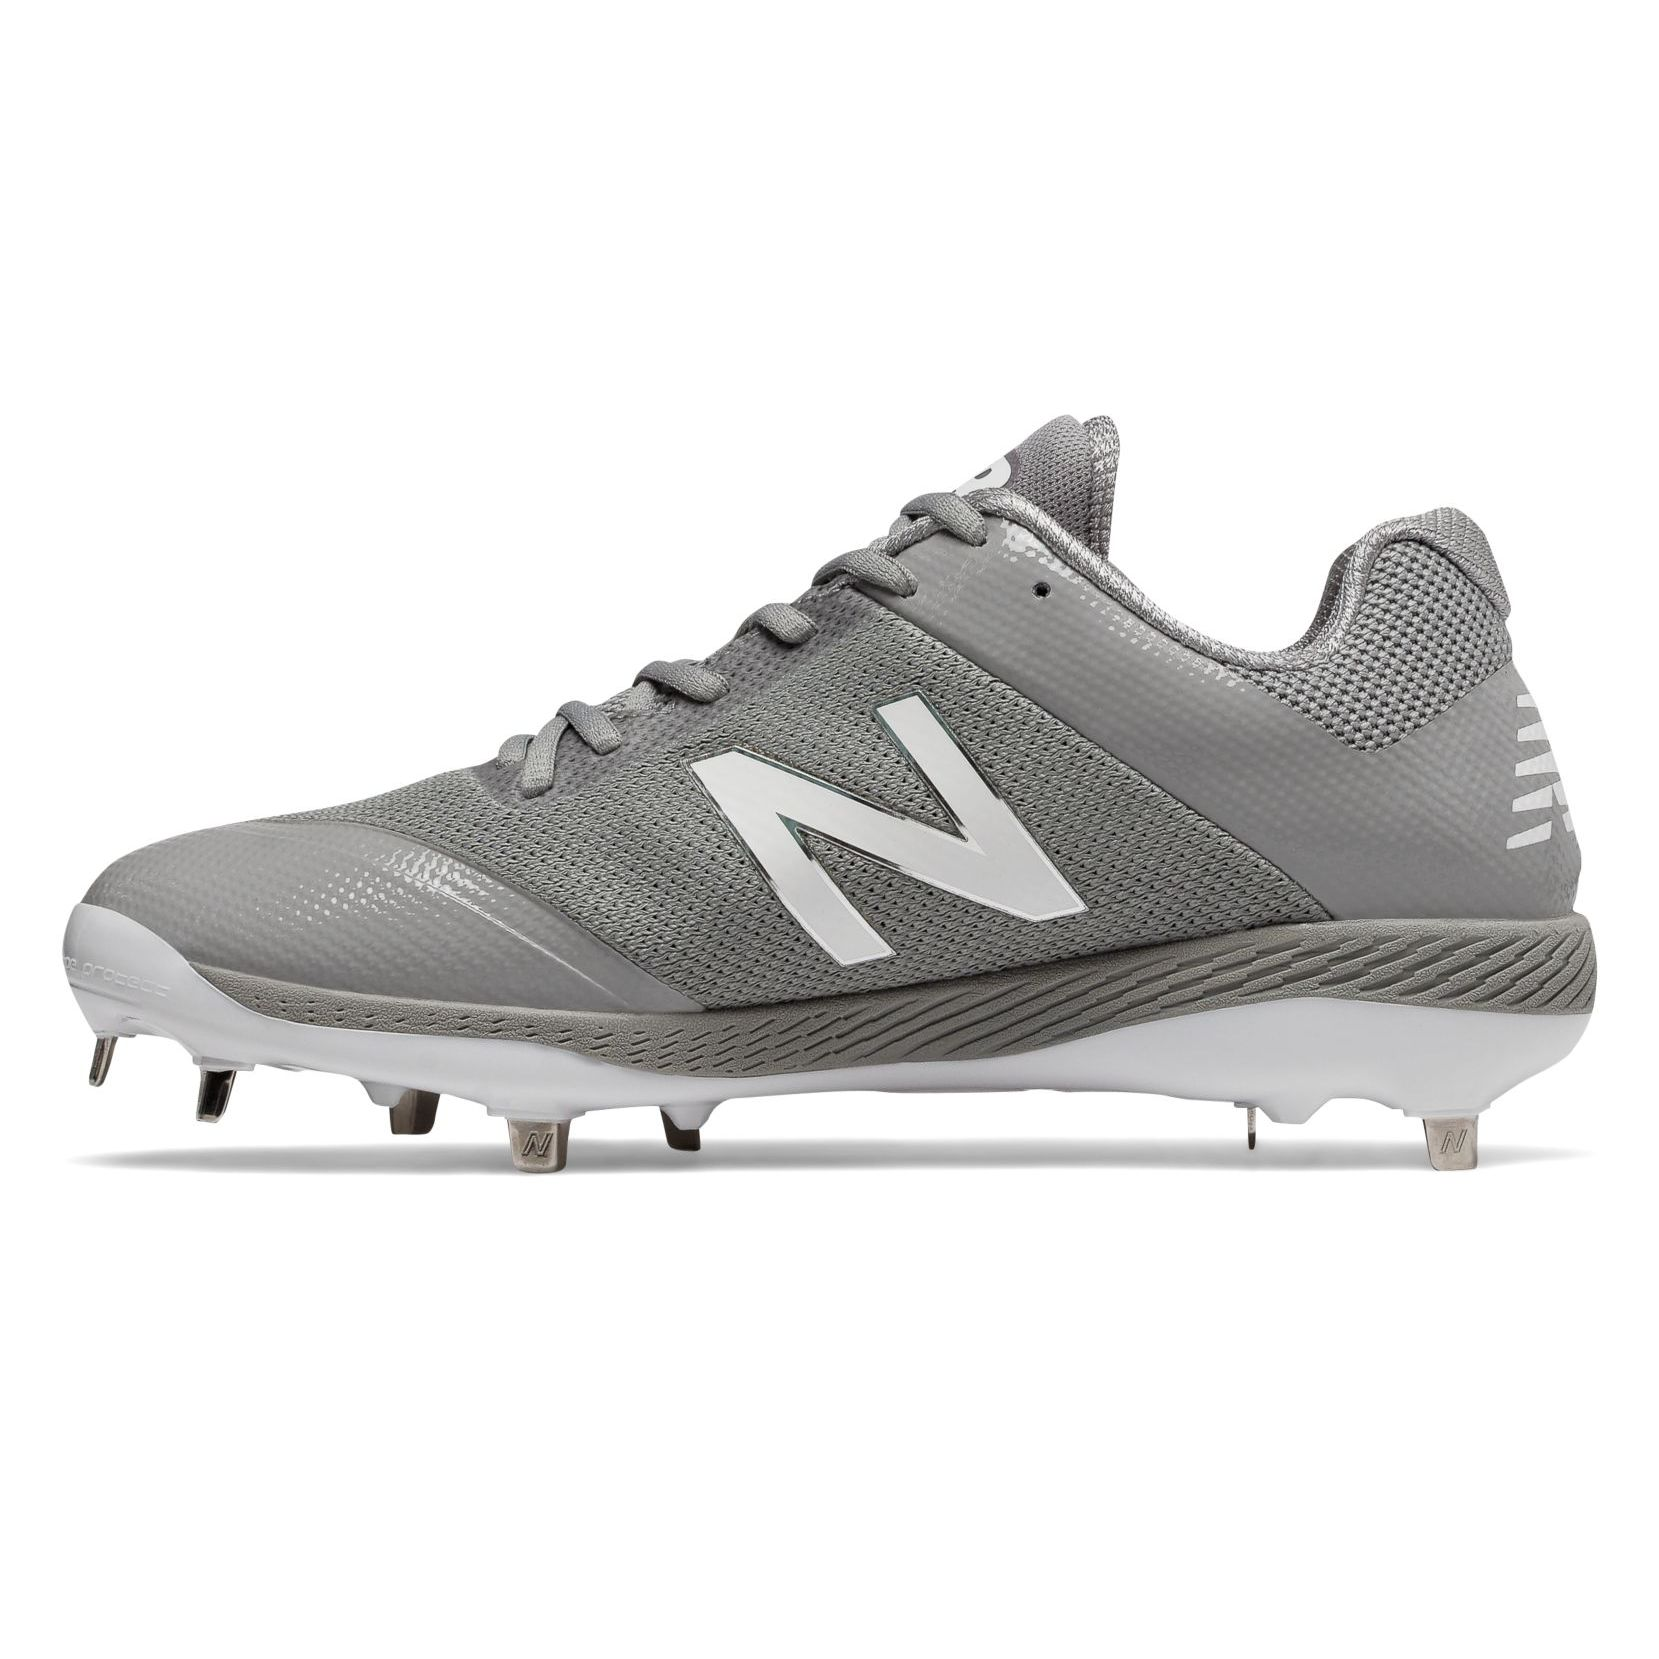 New Balance Low Cut Metal Cleat L4040v4